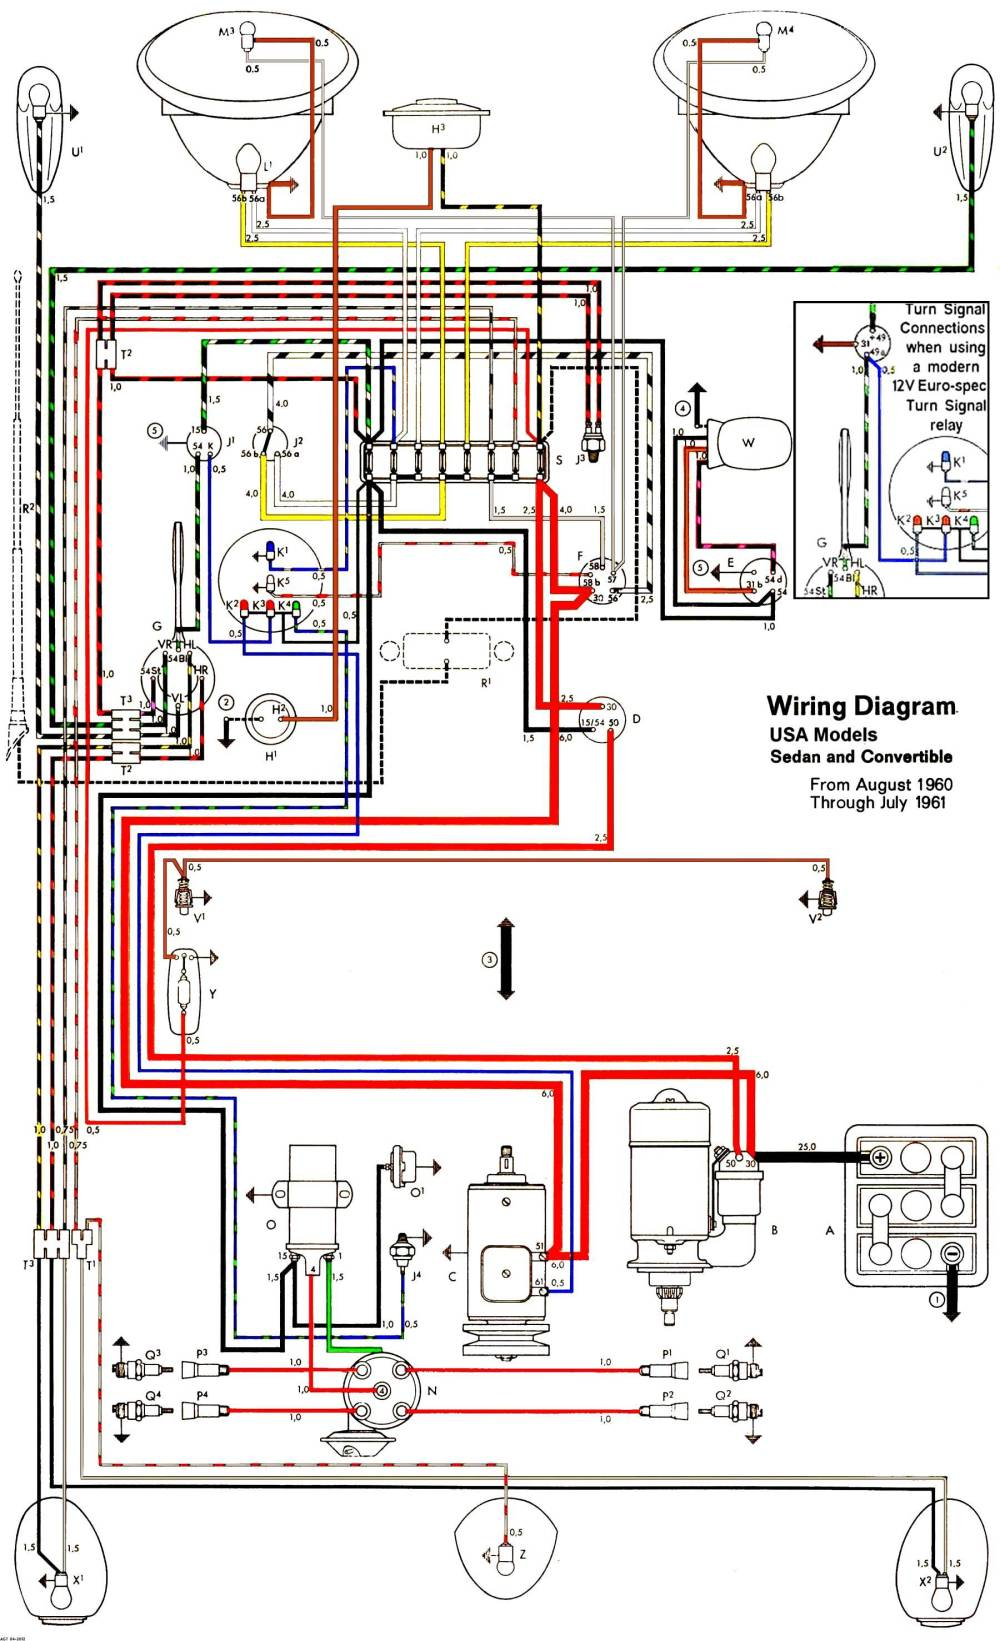 medium resolution of thesamba com type 1 wiring diagrams 1973 volkswagen beetle wiring diagram 74 vw wiring diagram